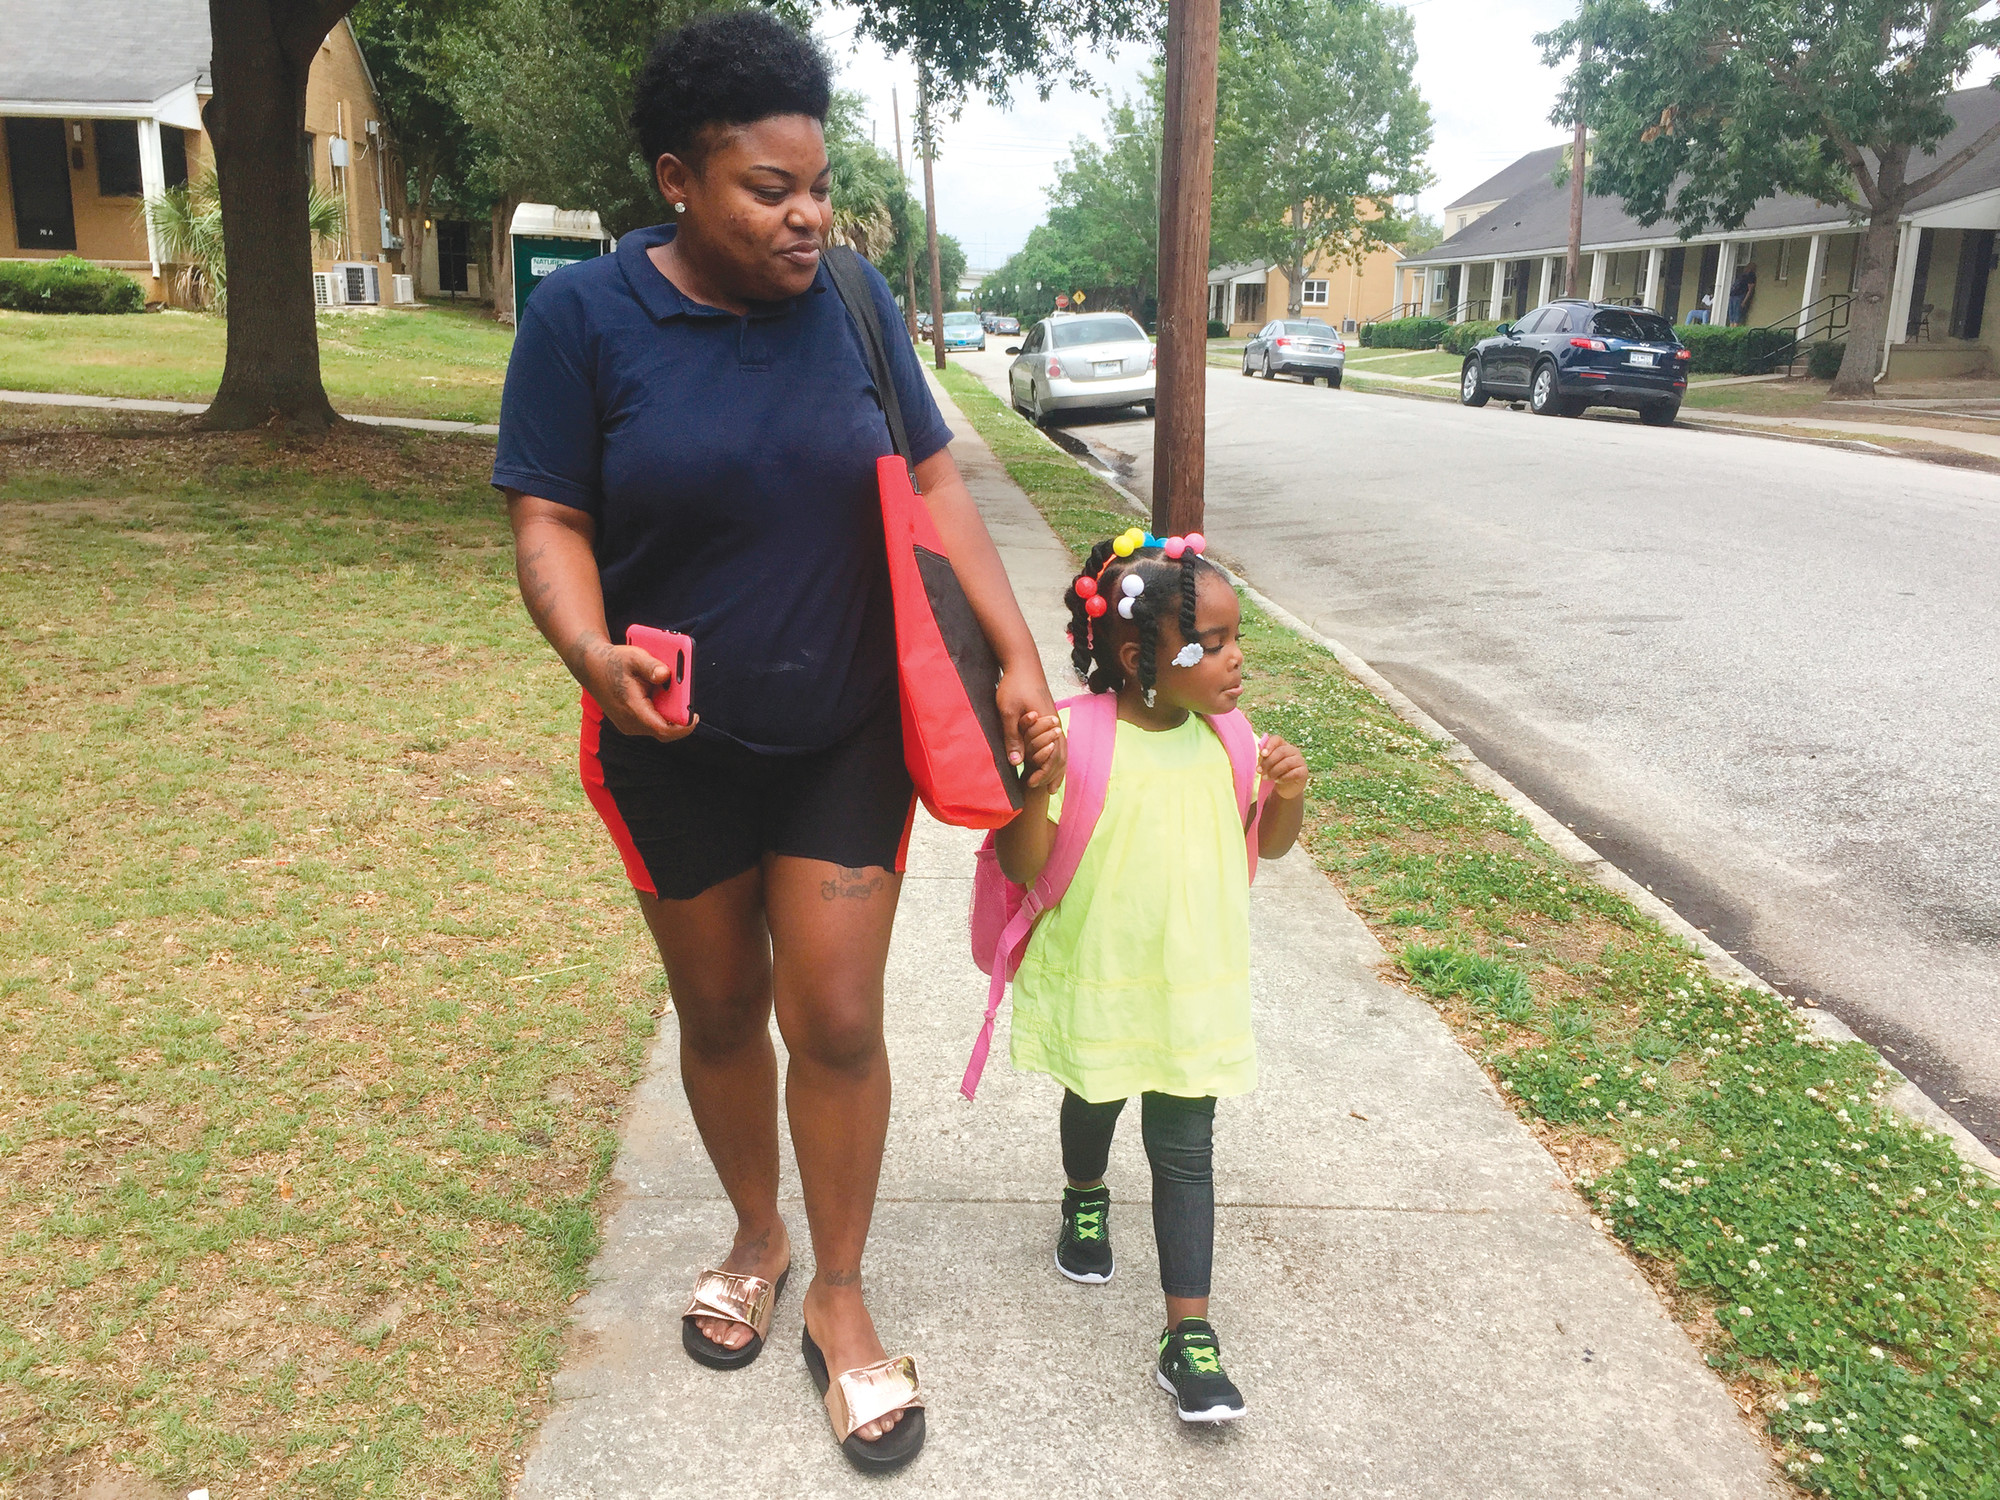 Shannon Brown, 29, walks with her four-year-old daughter,   Sai-Mya, in Charleston on May 17. Brown lives in public housing and could face a steep increase under a HUD   proposal that would raise rents for millions of low-income individuals and families.